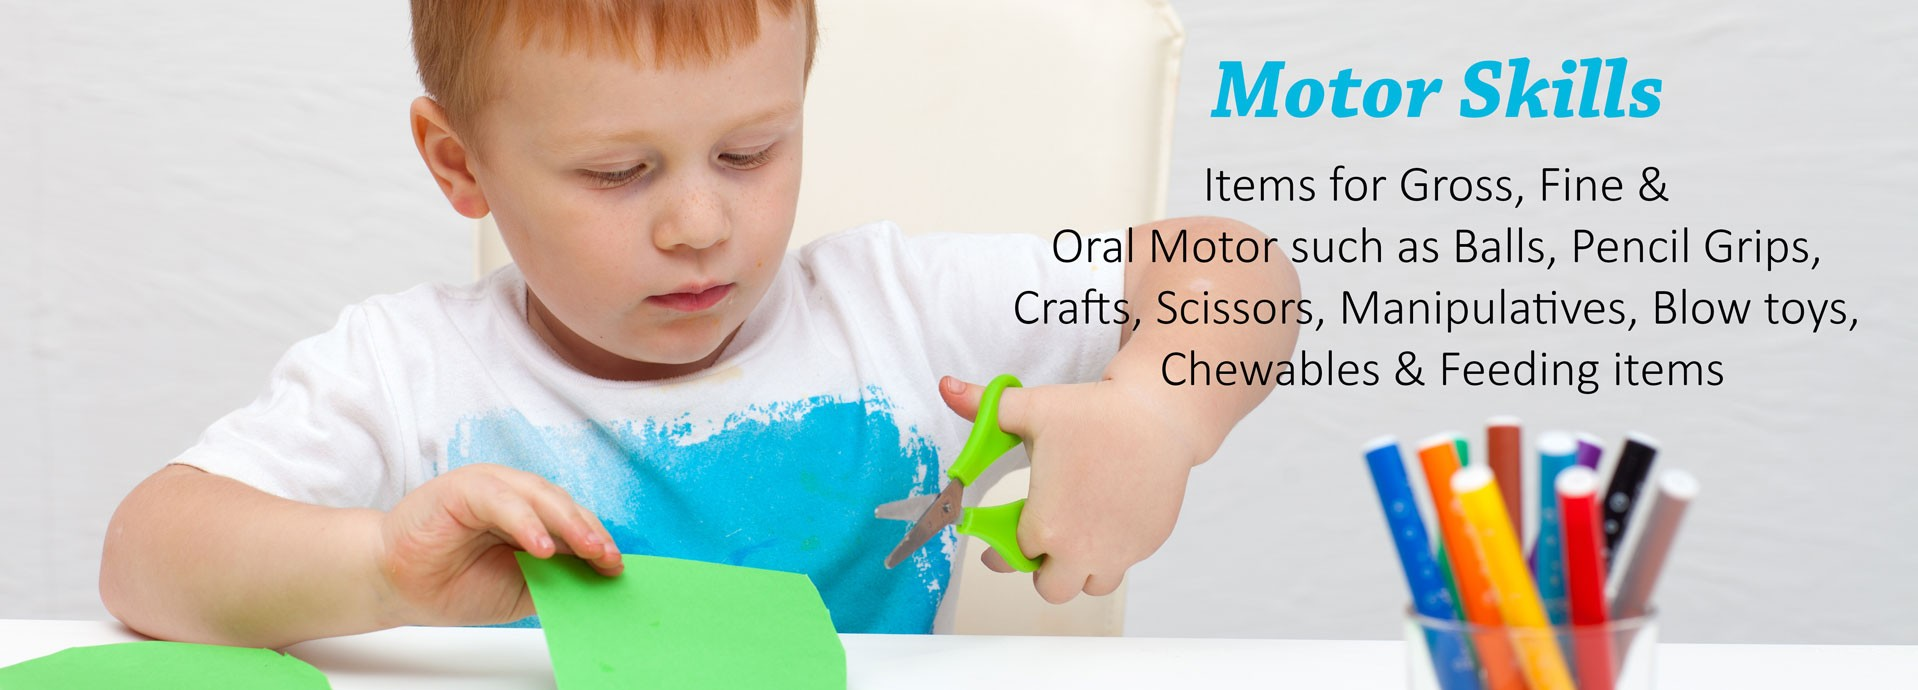 Motor Skills: Items for Gross, Fine & Oral Motor such as Balls, Pencil Grips, Crafts, Scissors, Manipulatives, Blow toys, Chewables & Feeding items